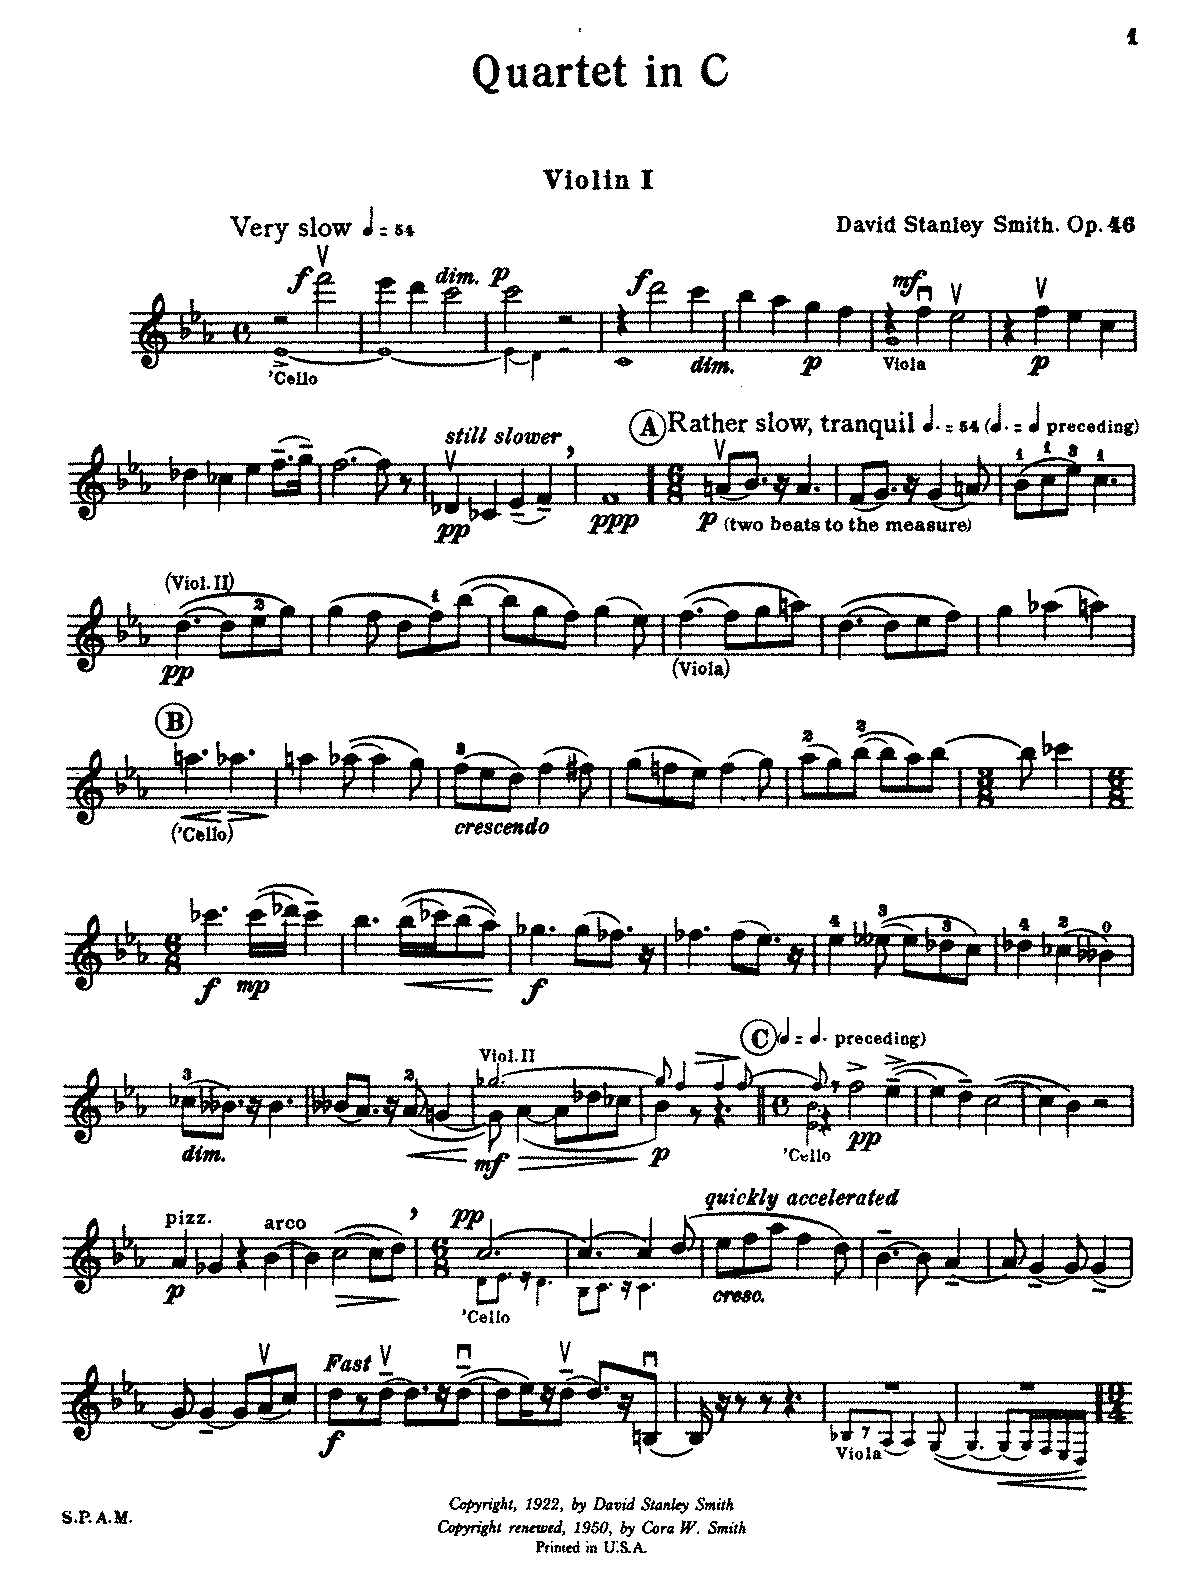 PMLP183592-DSSmith String Quartet in C minor, Op.46 parts.pdf